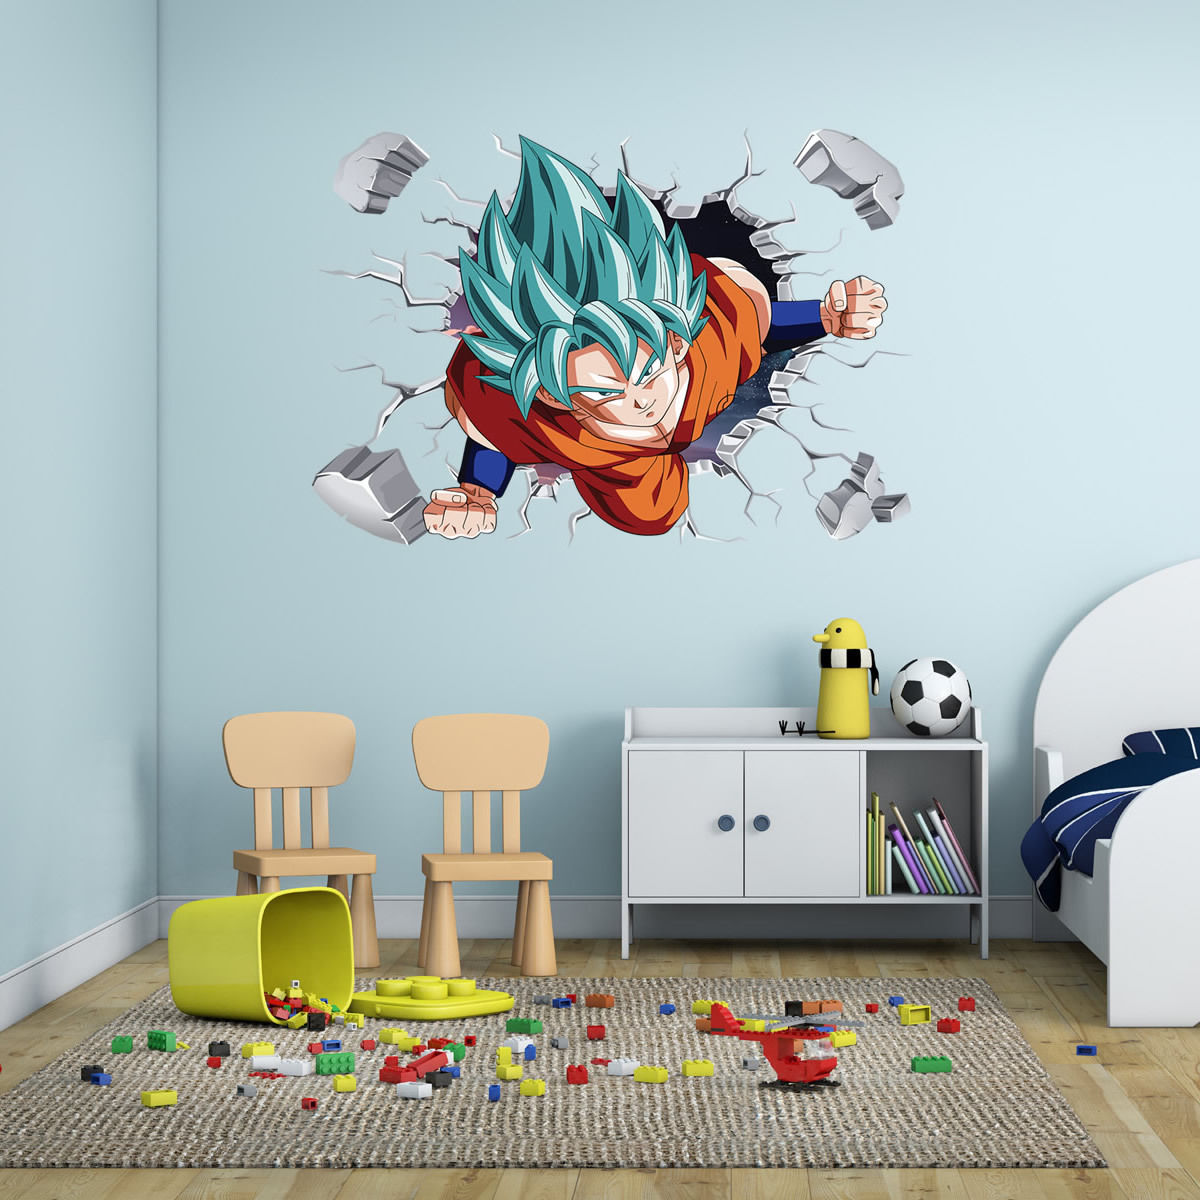 Personality attractive 3d goku wall sticker vinyl art home bedroom personality attractive 3d goku wall sticker vinyl art home bedroom poster in wall stickers from home garden on aliexpress alibaba group amipublicfo Images